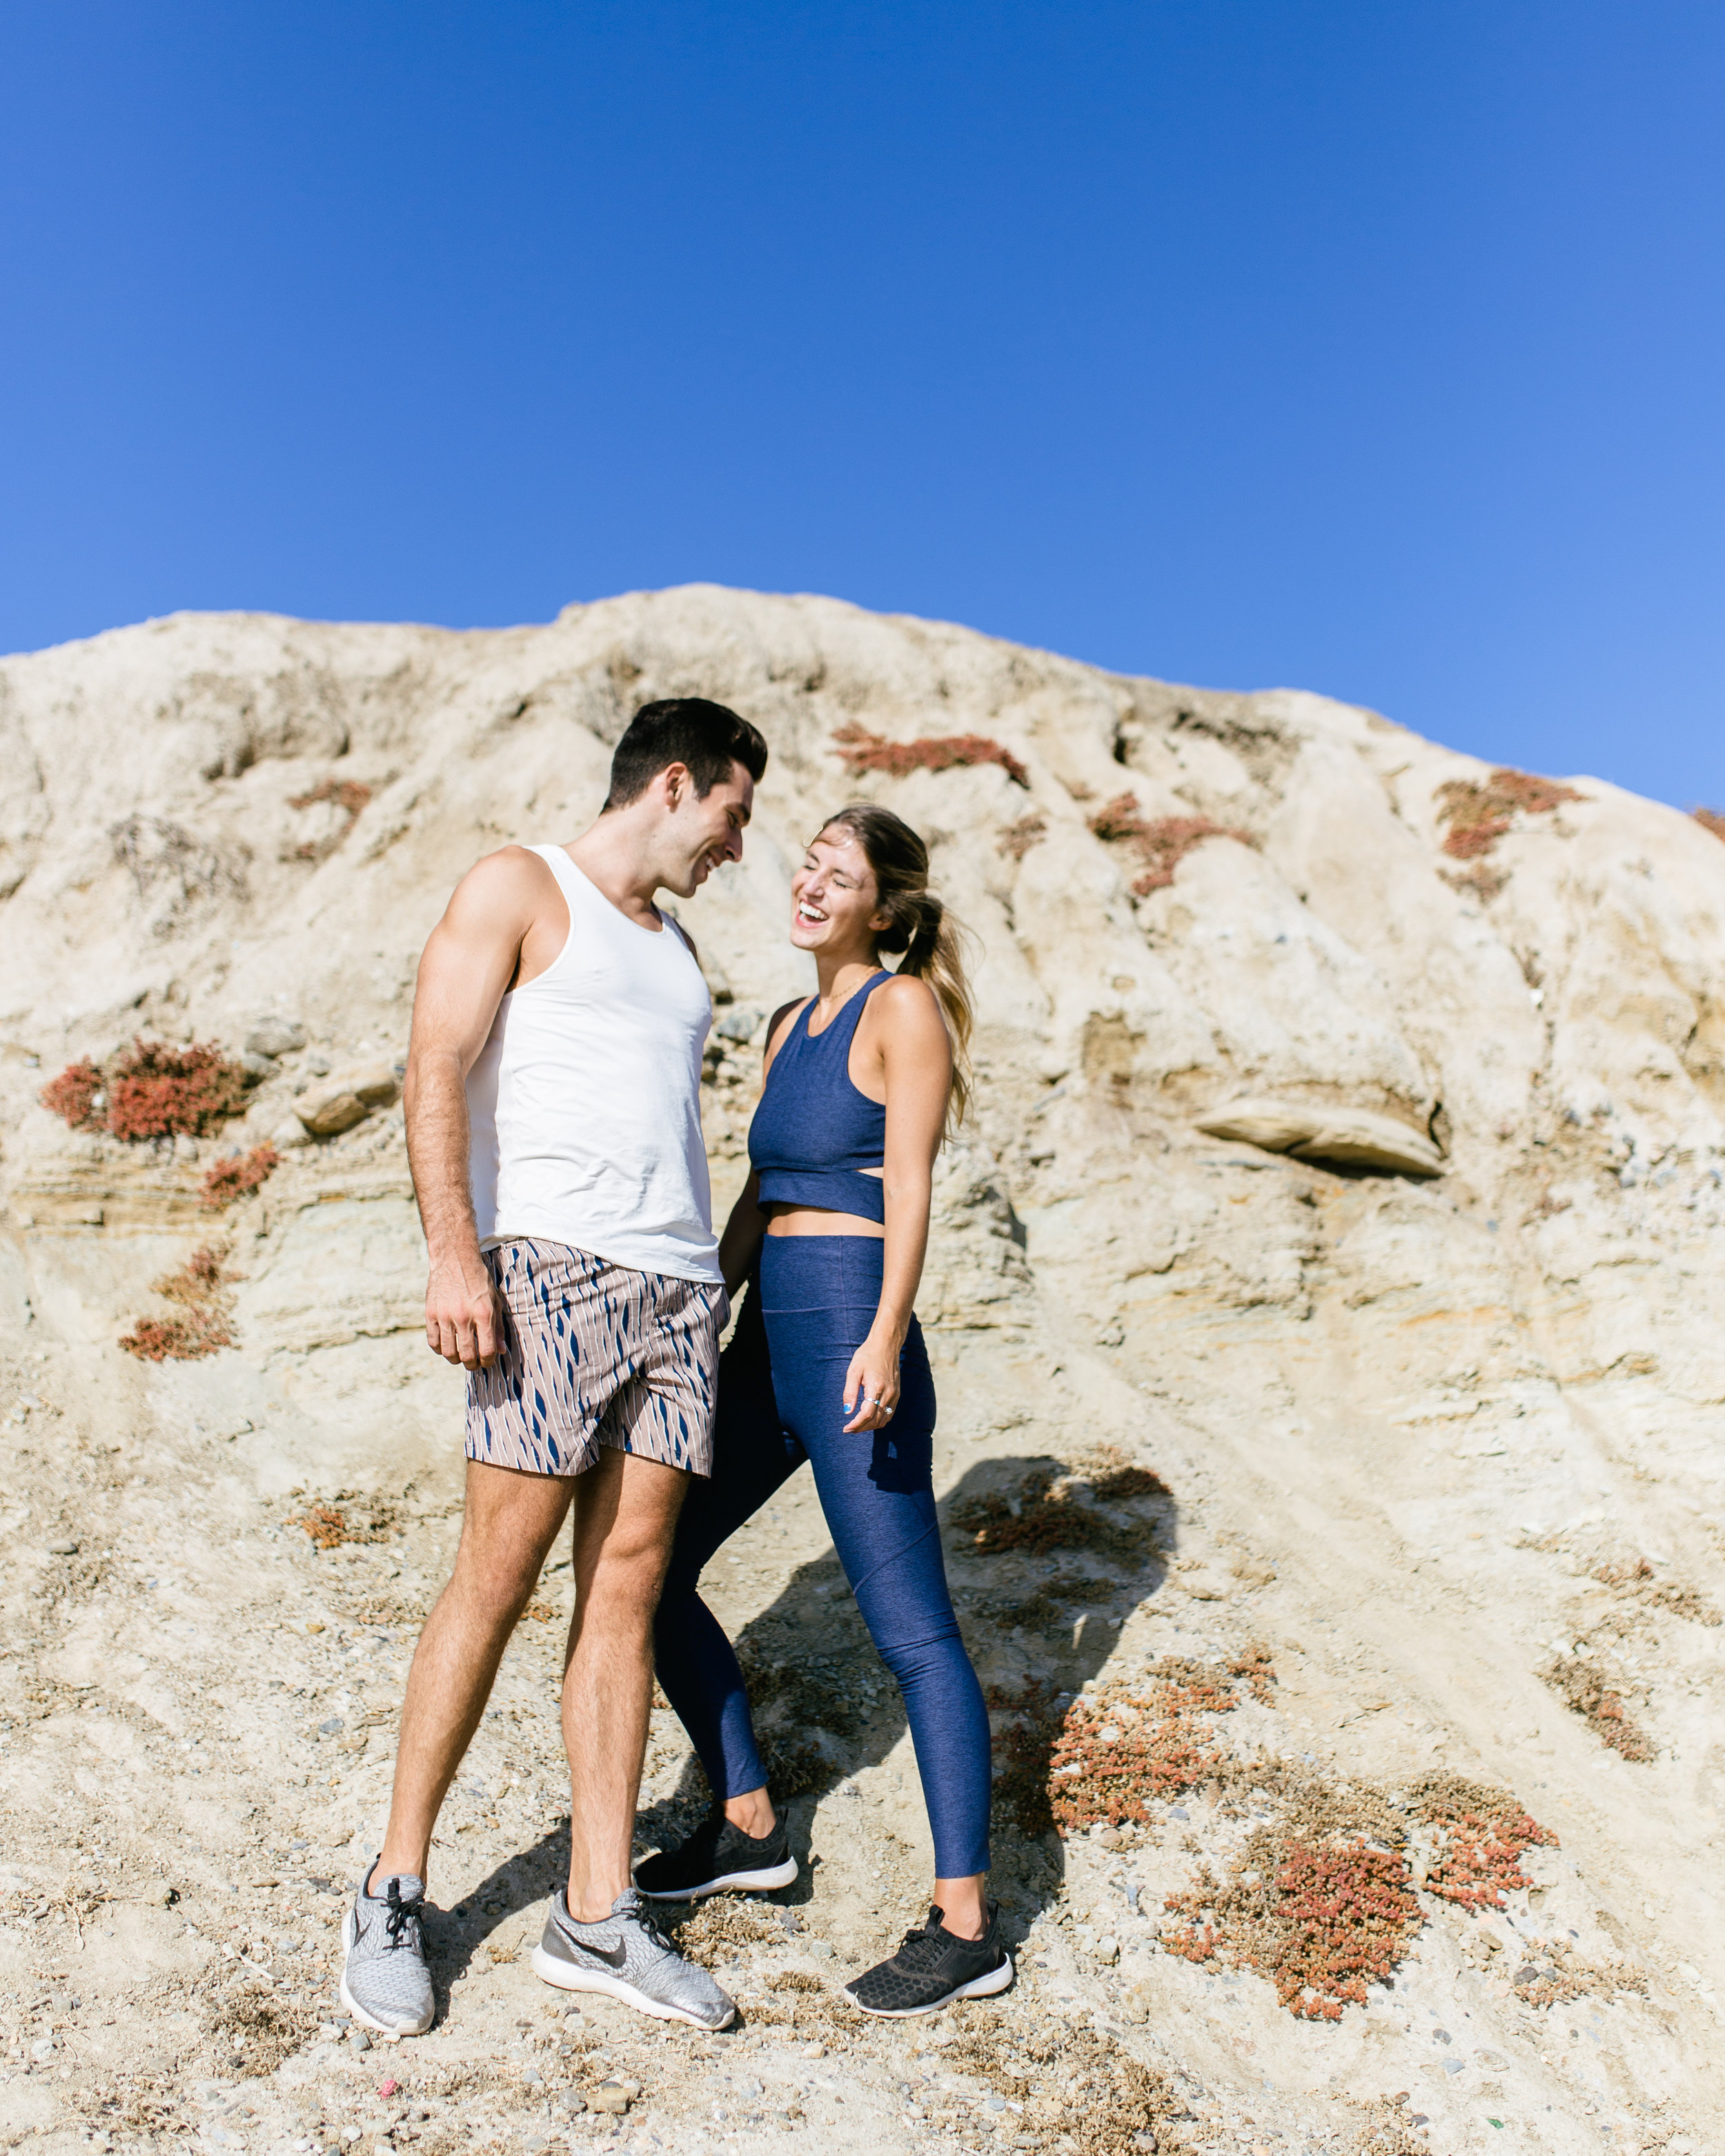 outdoor voices how to stay fit on the road